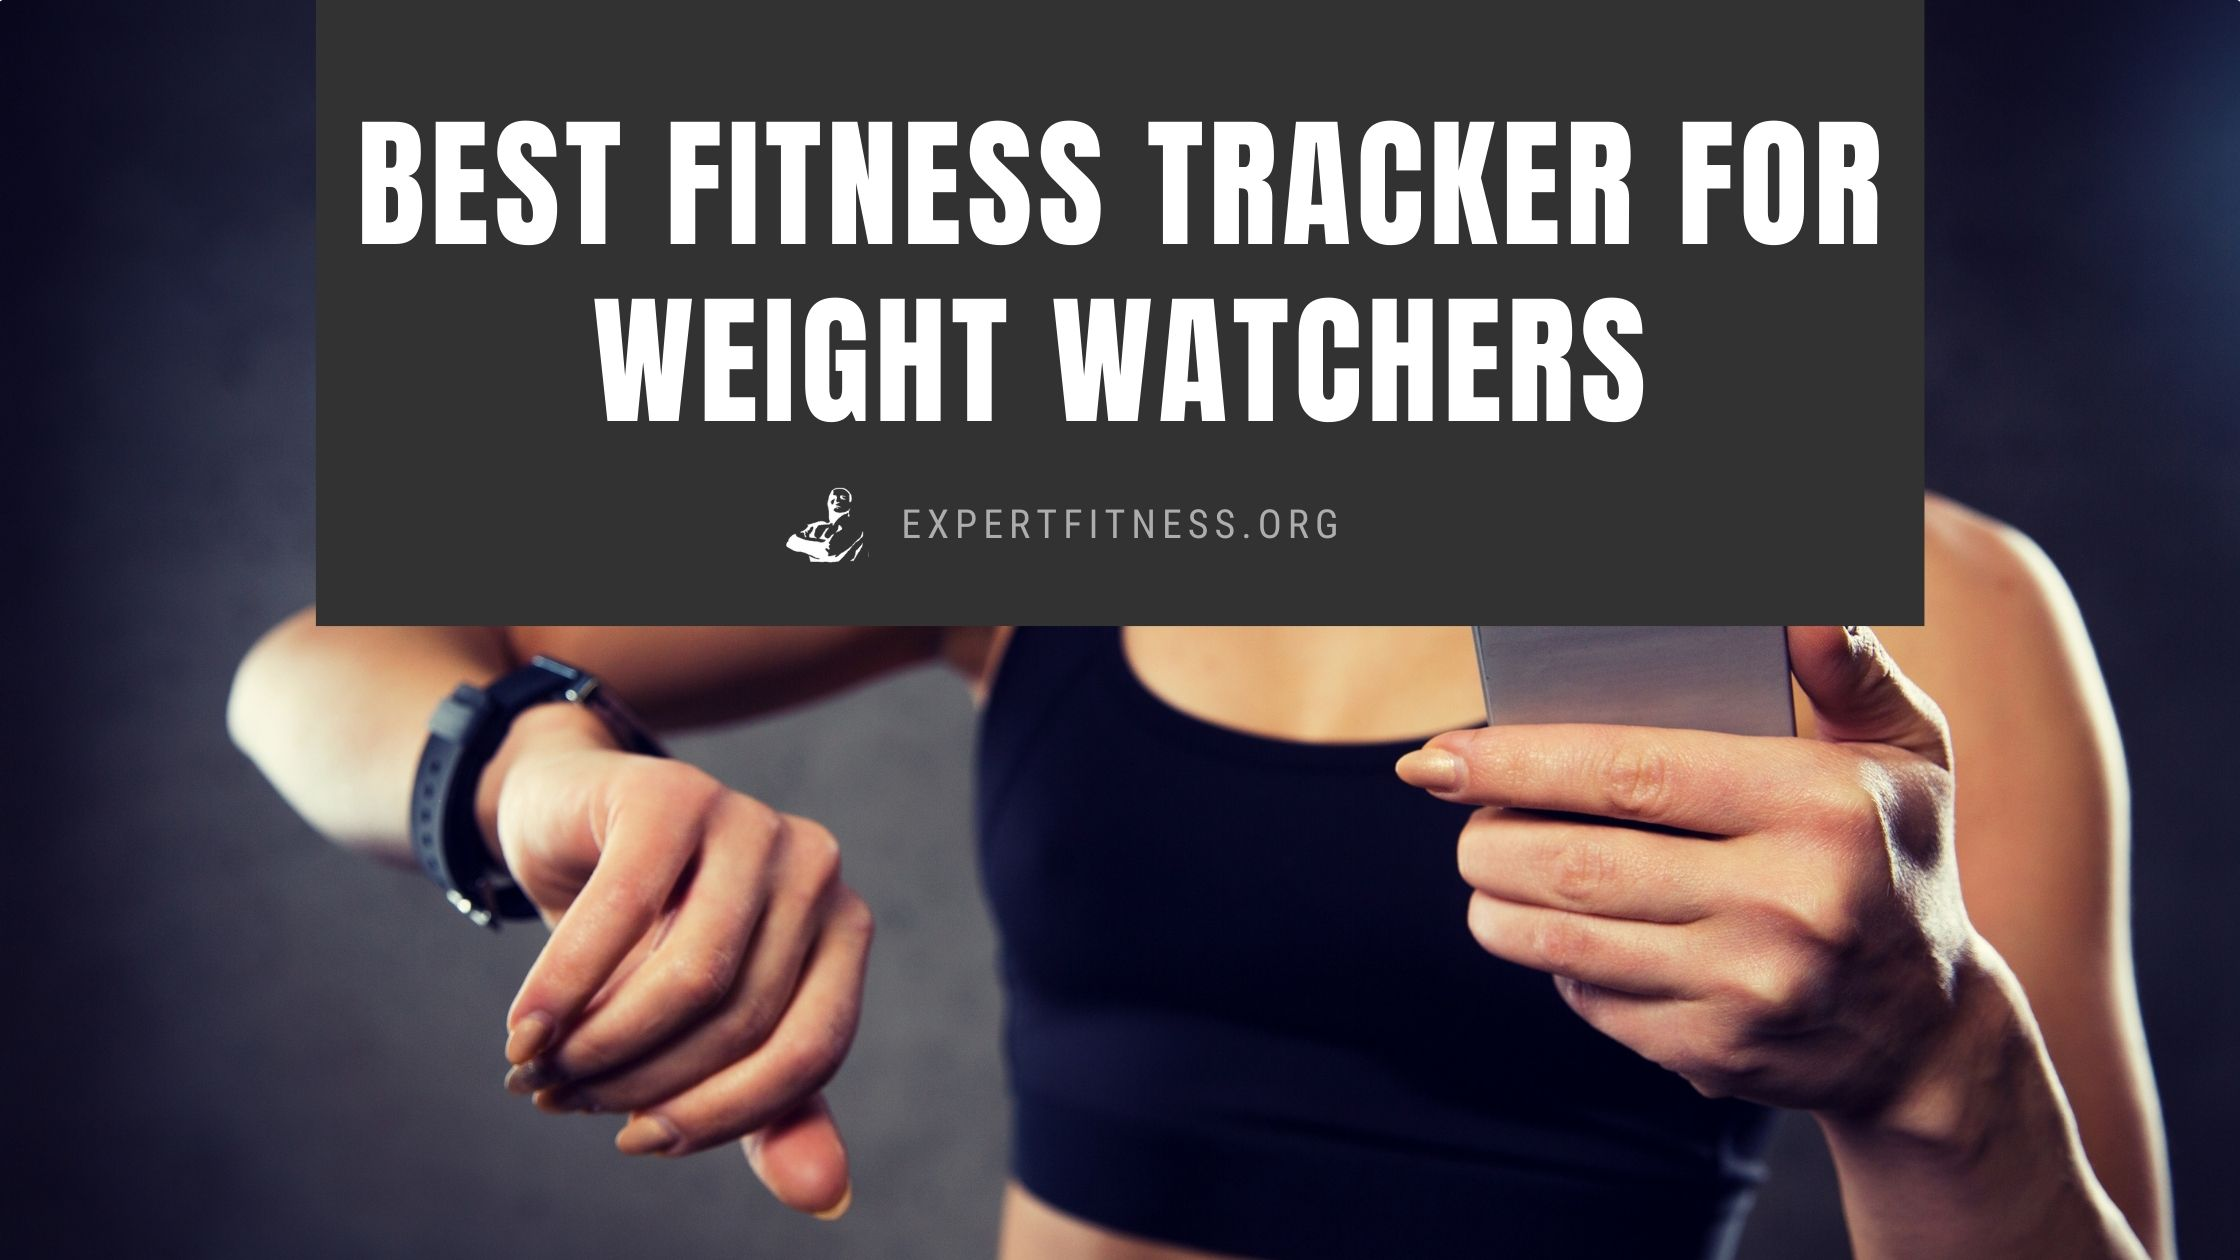 EF-Best-fitness-tracker-for-weight-watchers